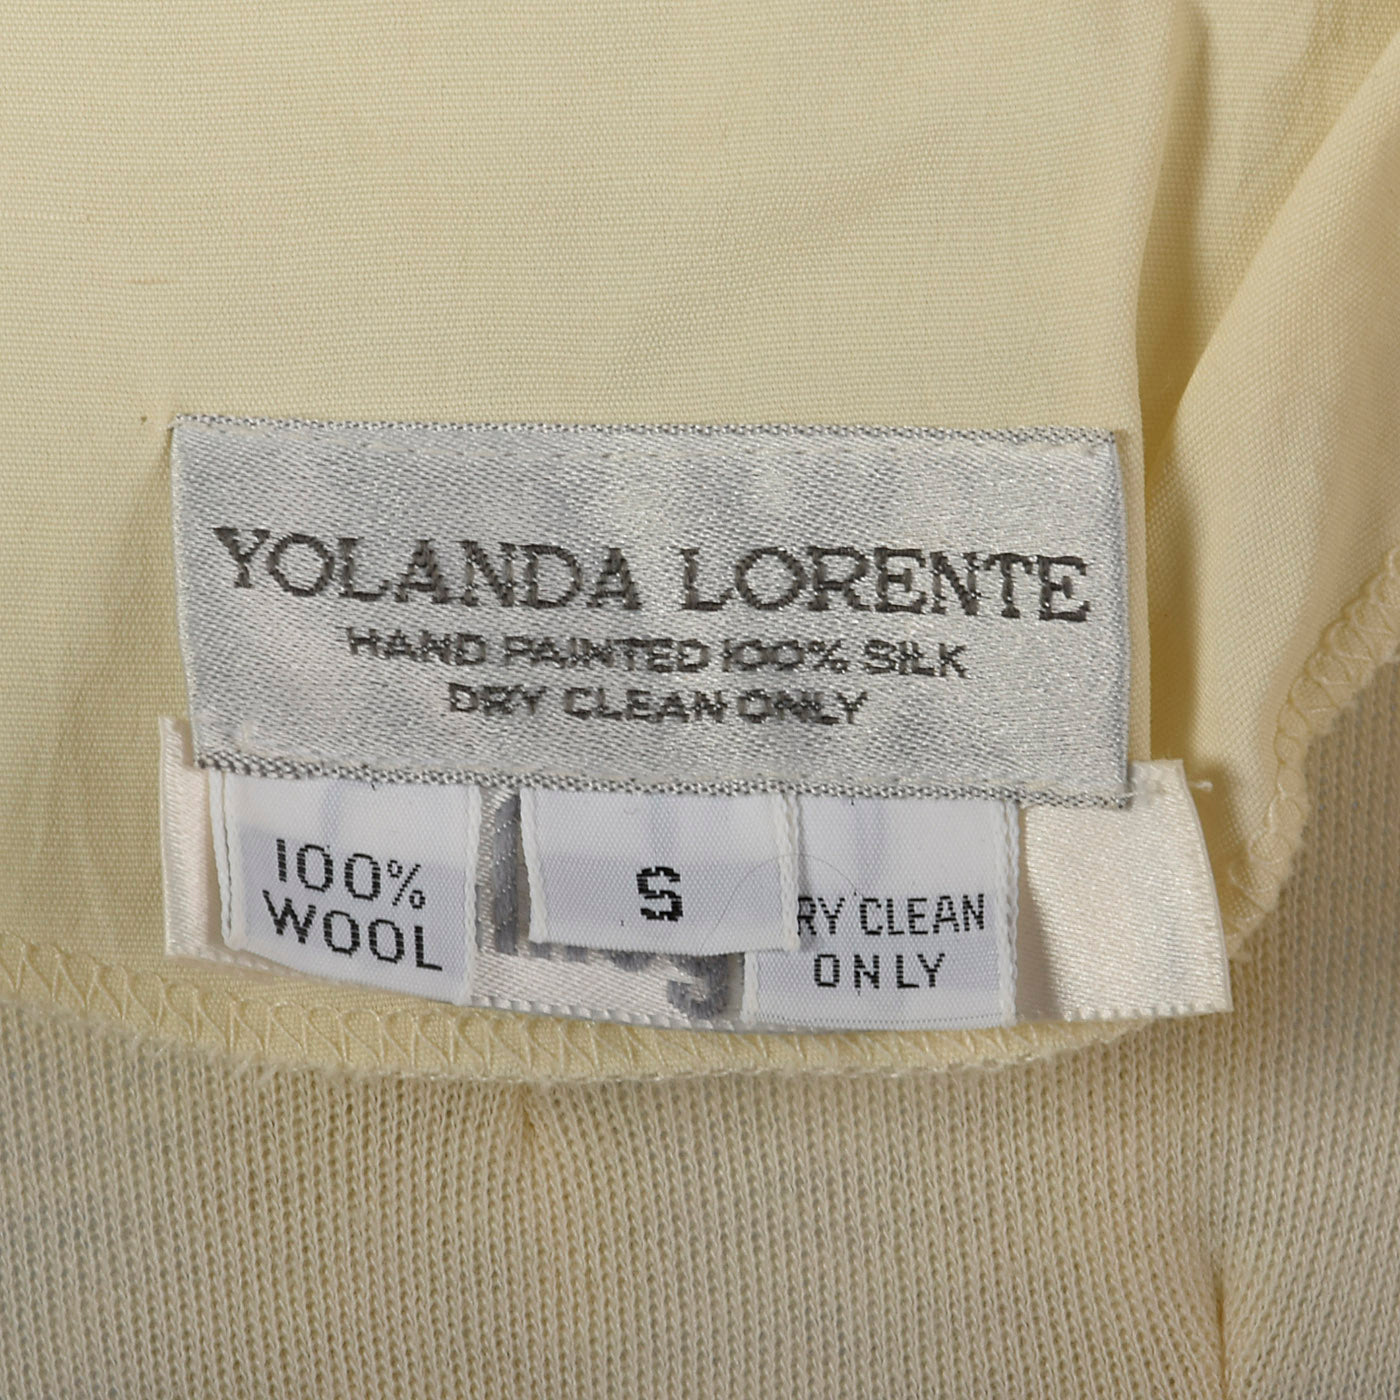 1980s Yolanda Lorente I Magnin Unique Wool Set